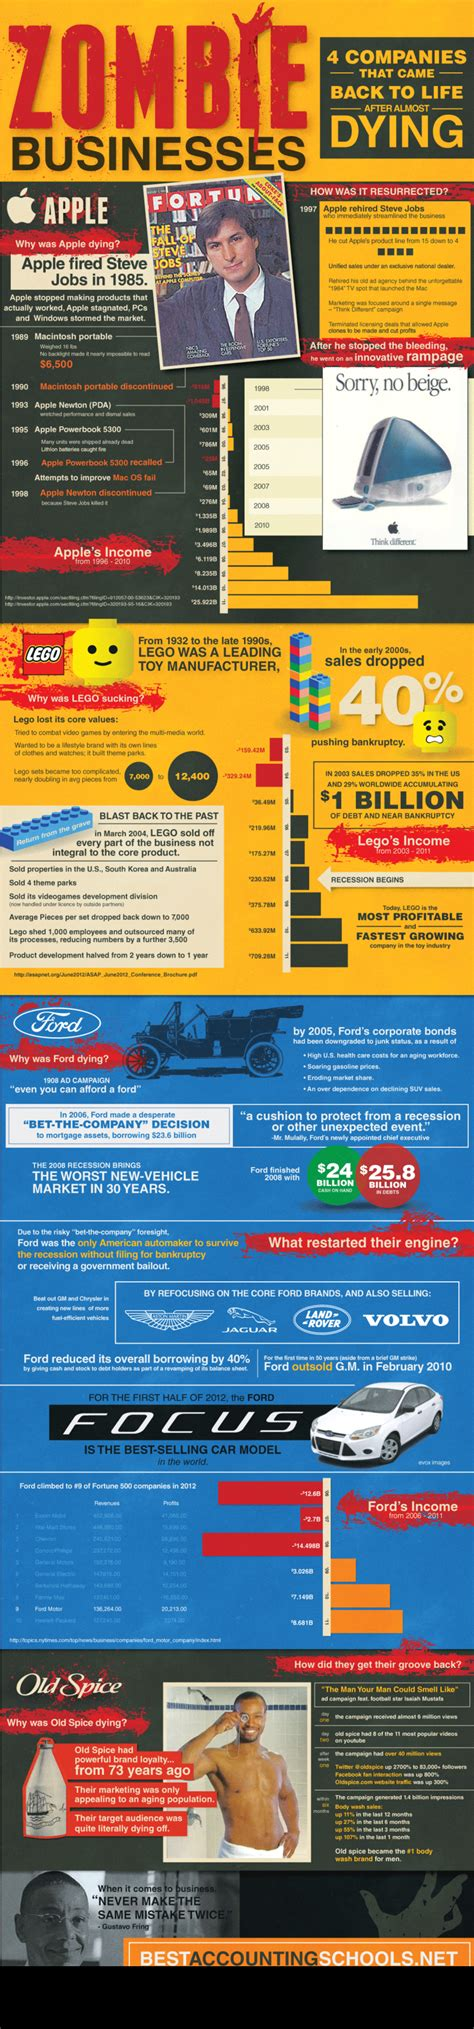 zombie businesses infographic came companies dead credit